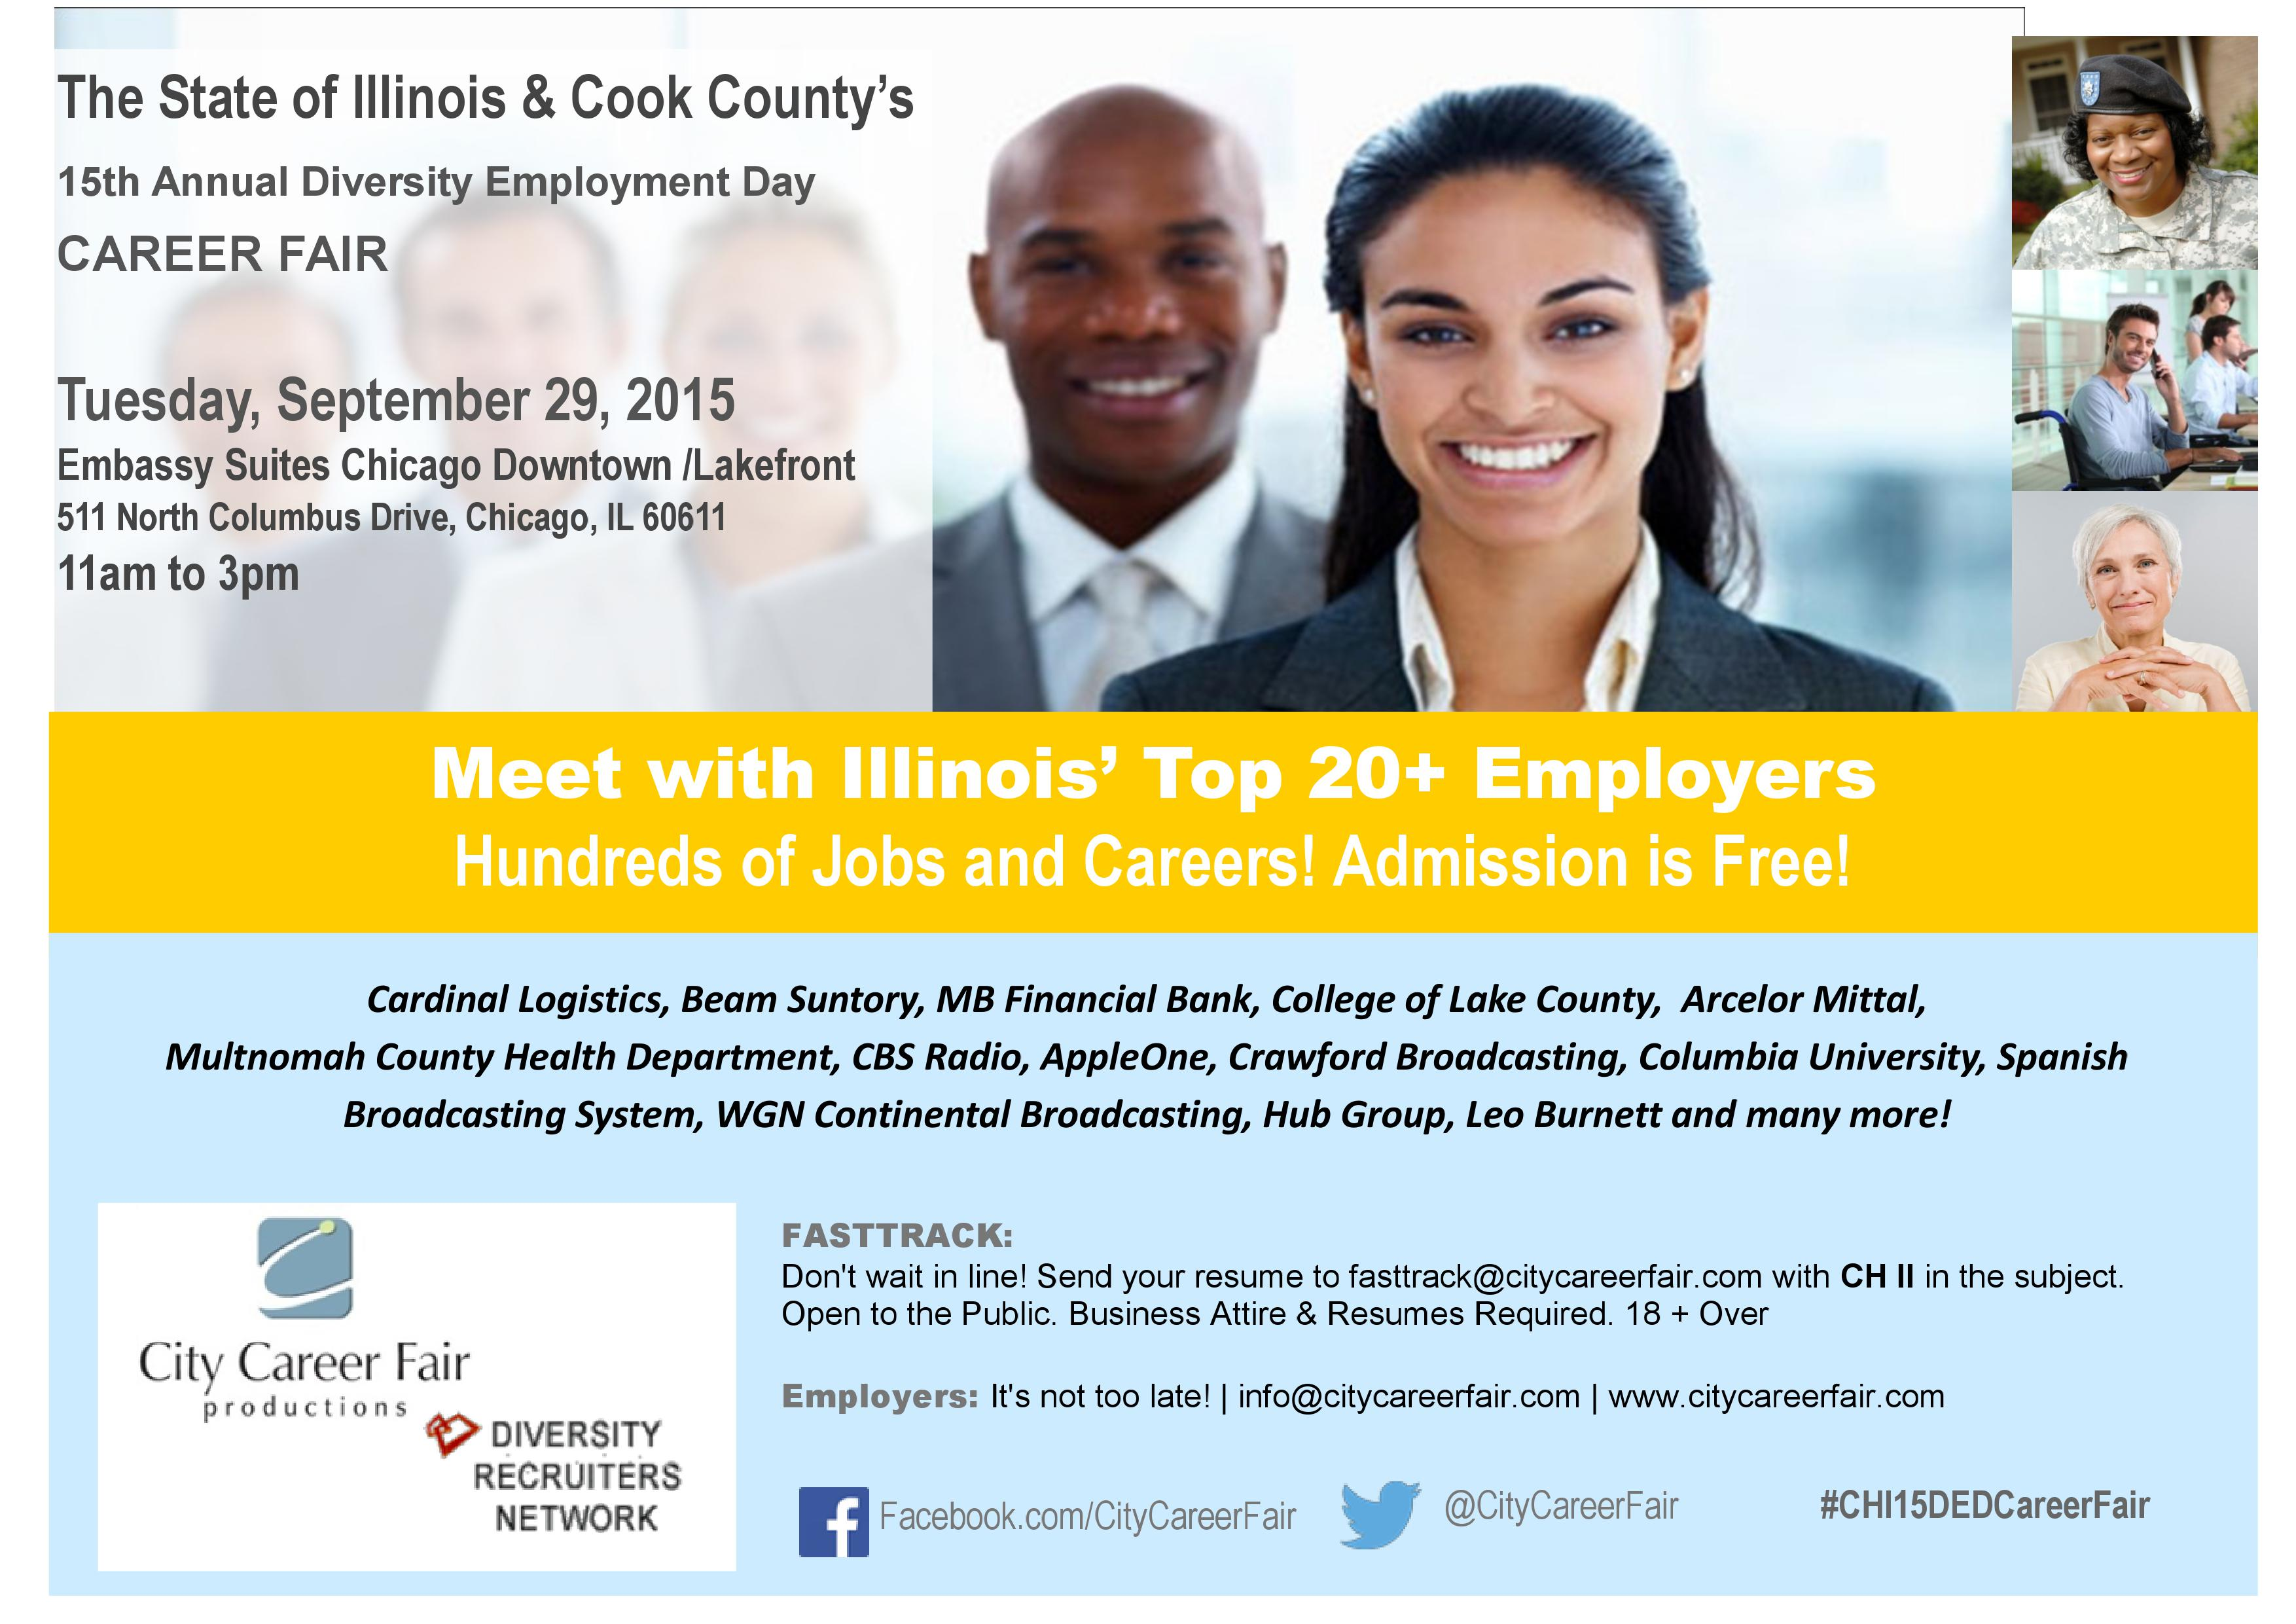 State of Illinois & Cook County's 15th Annual Diversity